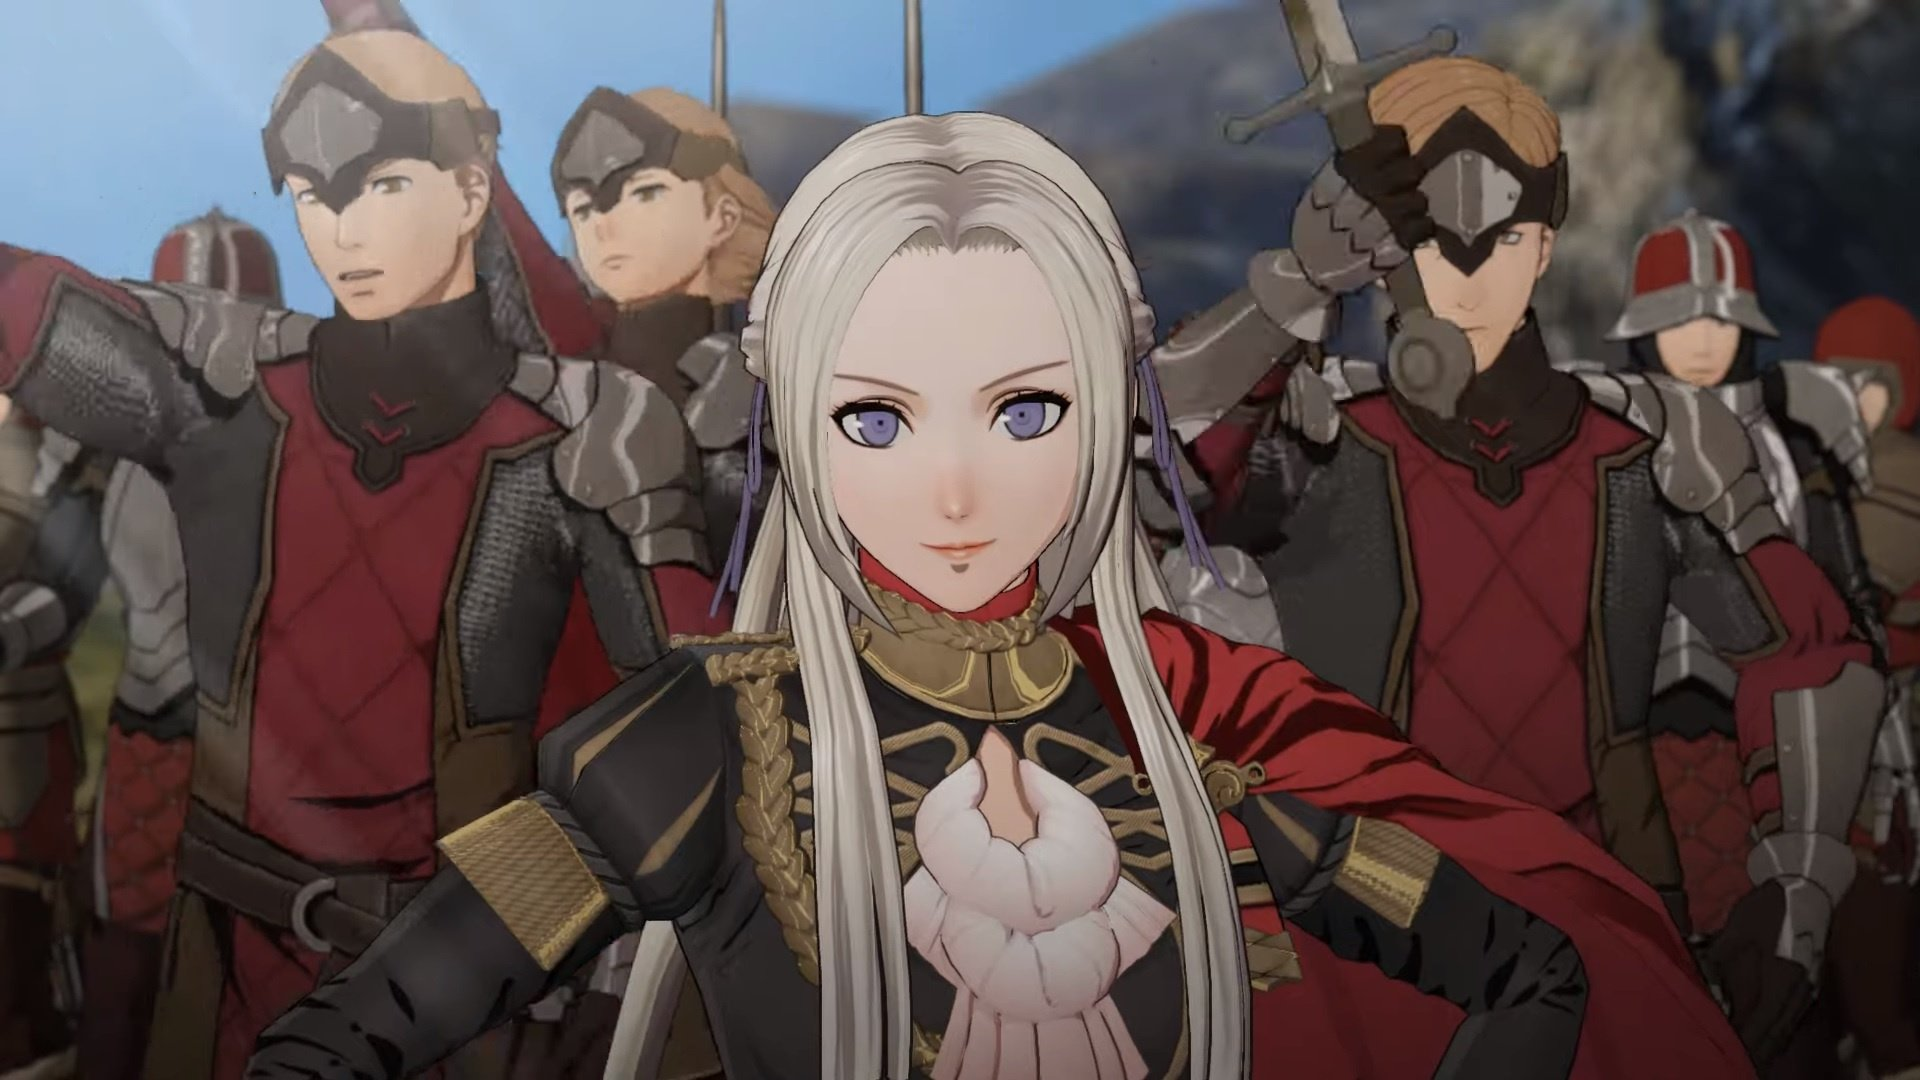 There Is A Guide For Beginners To Play Fire Emblem - Three Houses